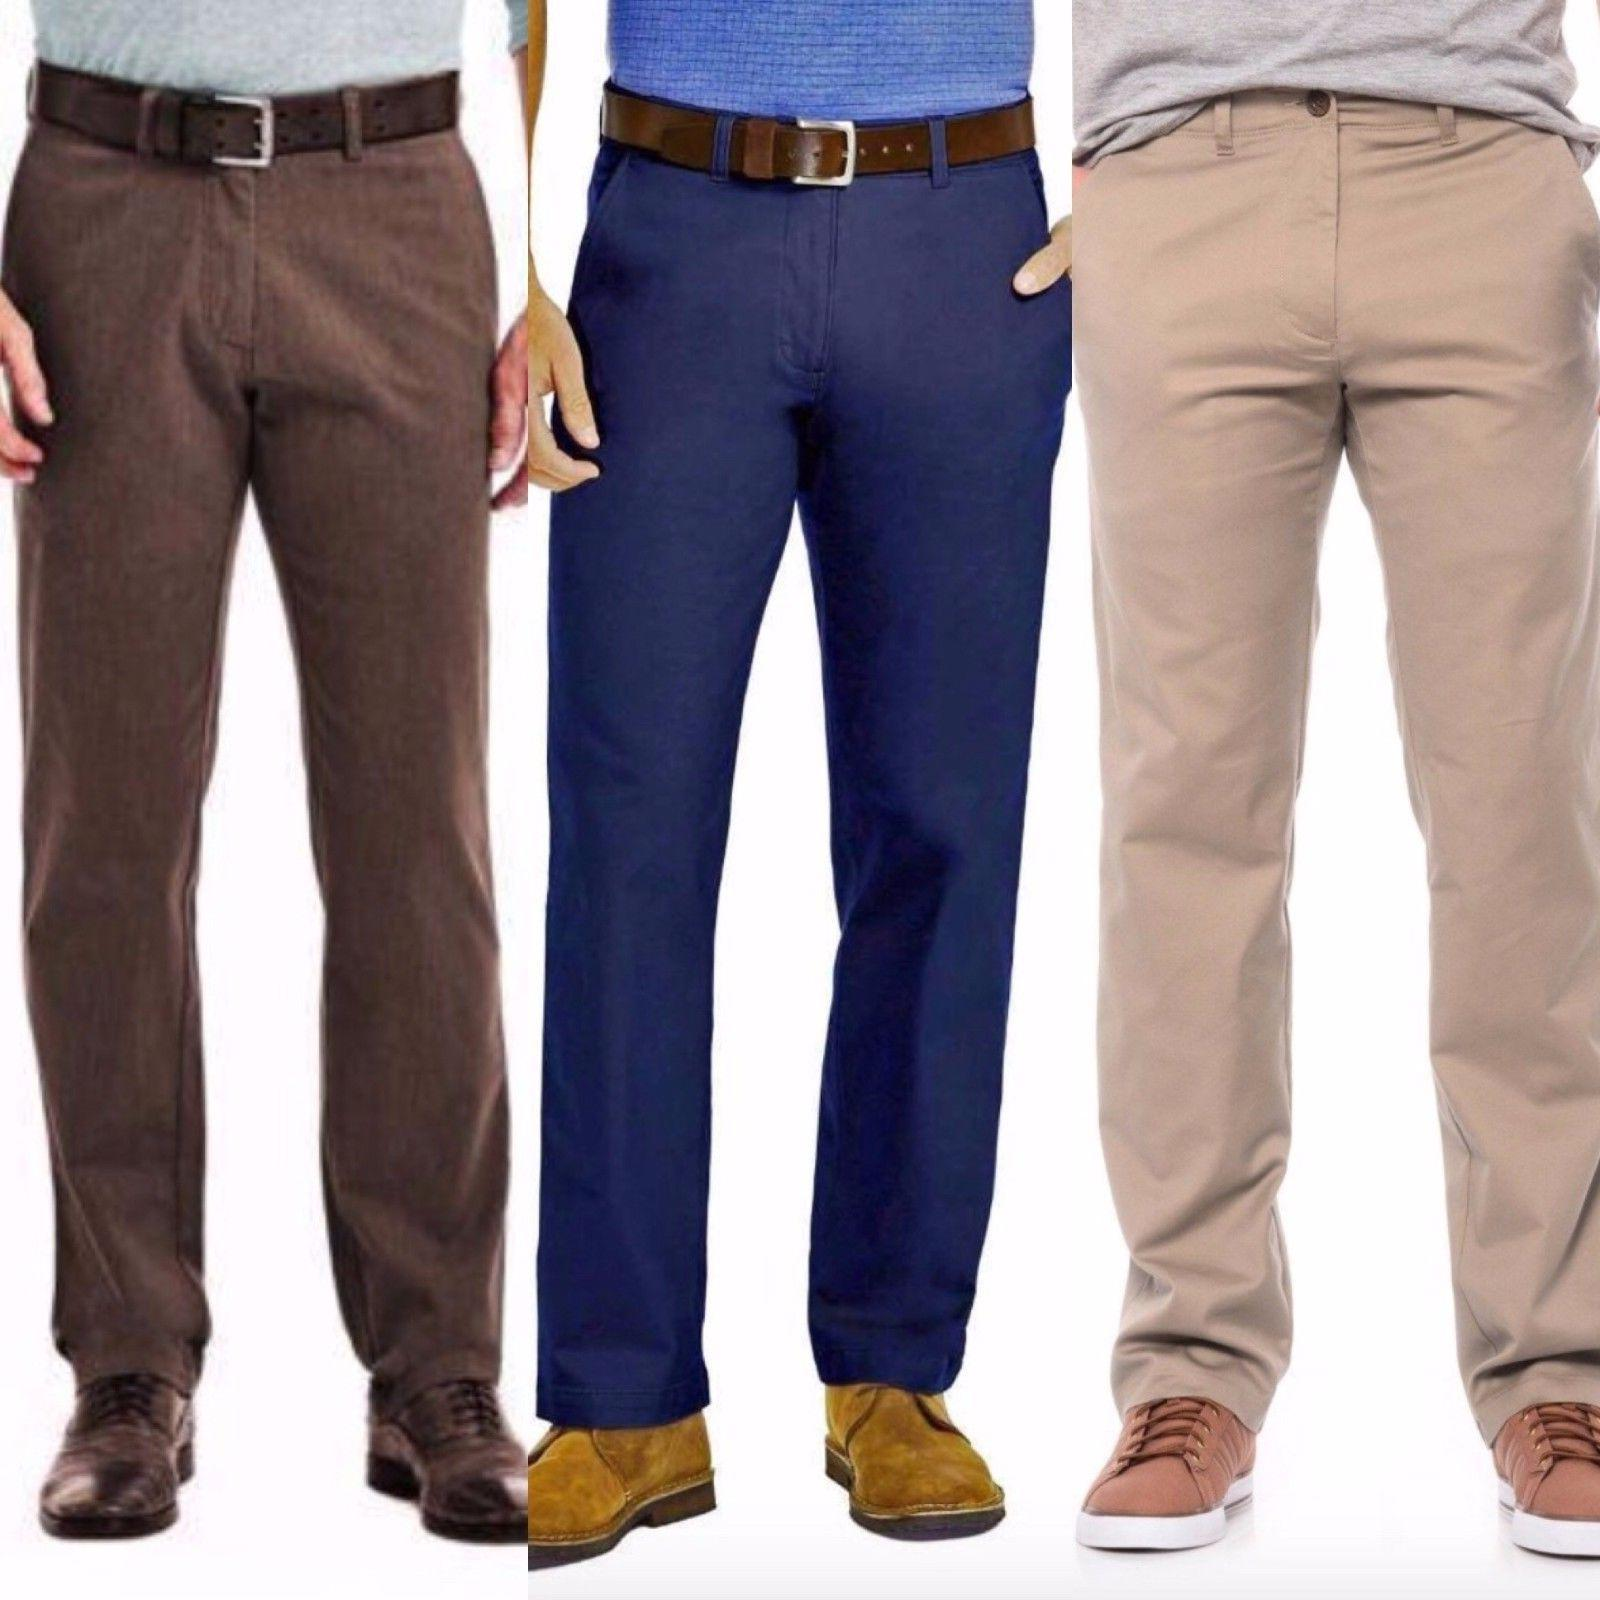 Haggar in Motion Men's Straight Fit Chino Pants w/ Super Fle